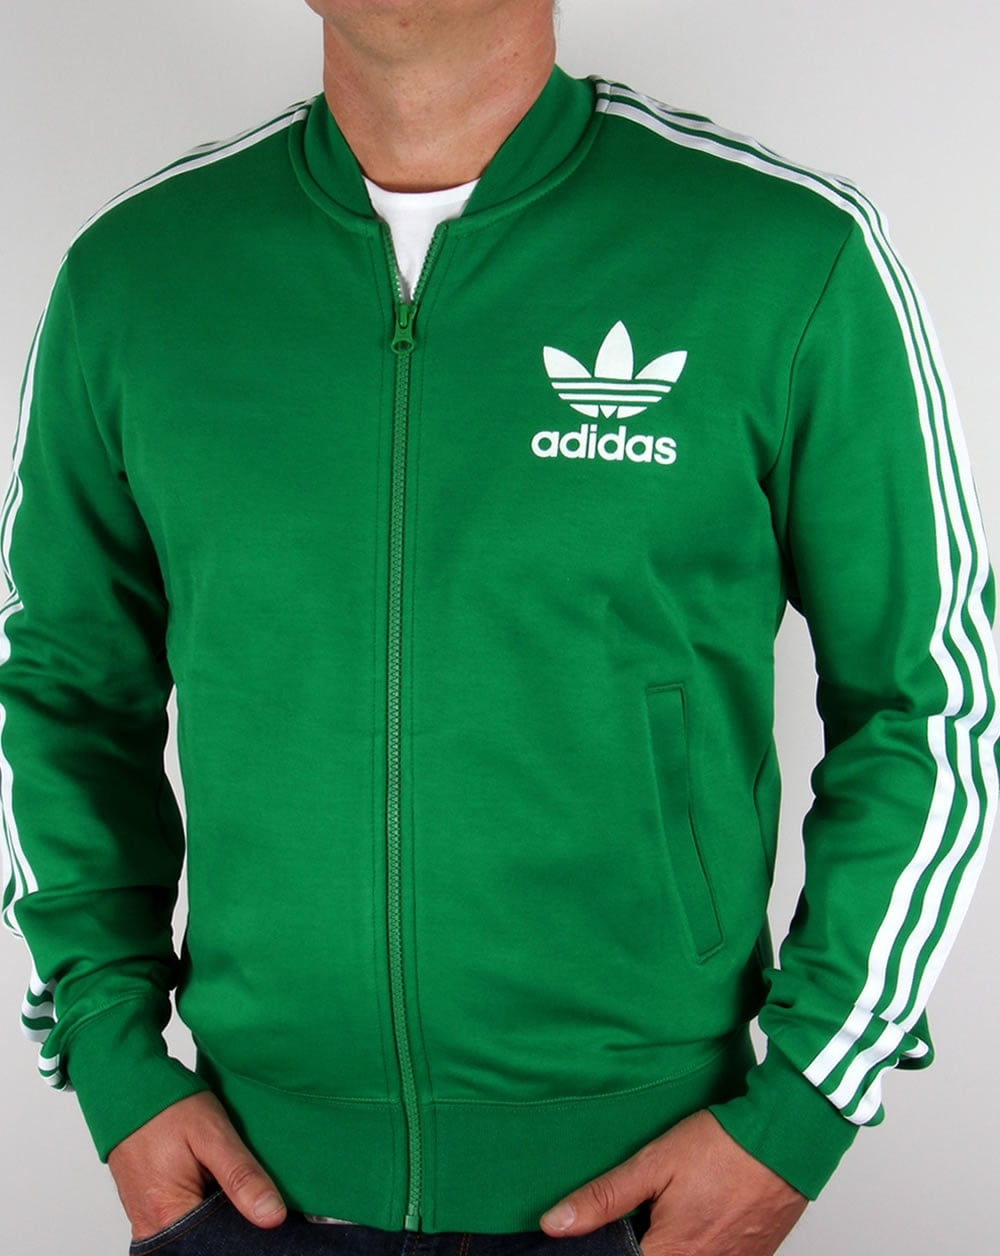 33f6c47e3b80 adidas Originals Adidas Originals Superstar Track Top Green White